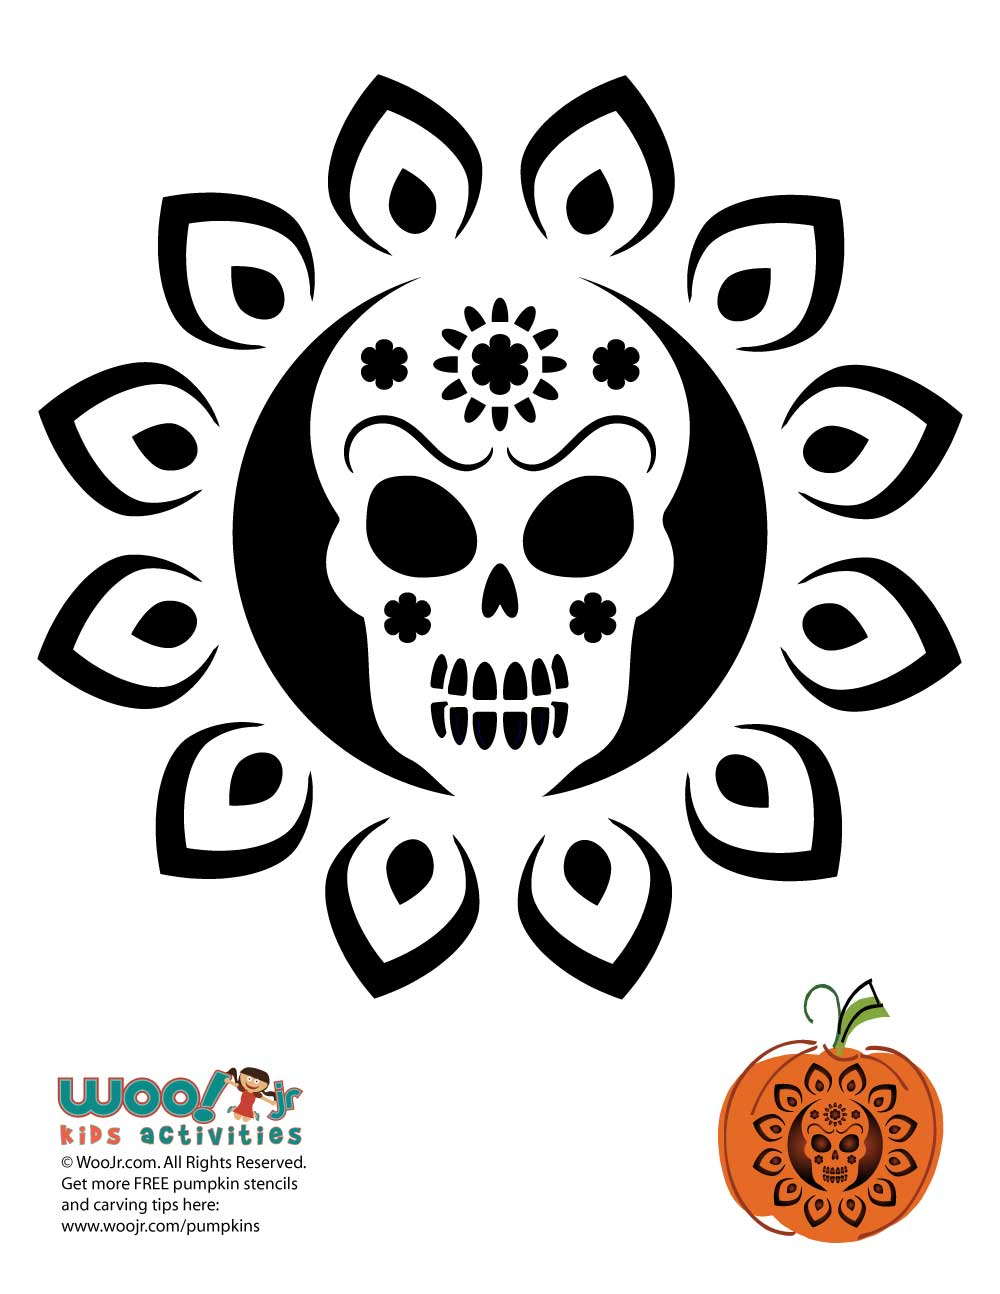 Dia de los muertos pumpkin pattern woo jr kids activities